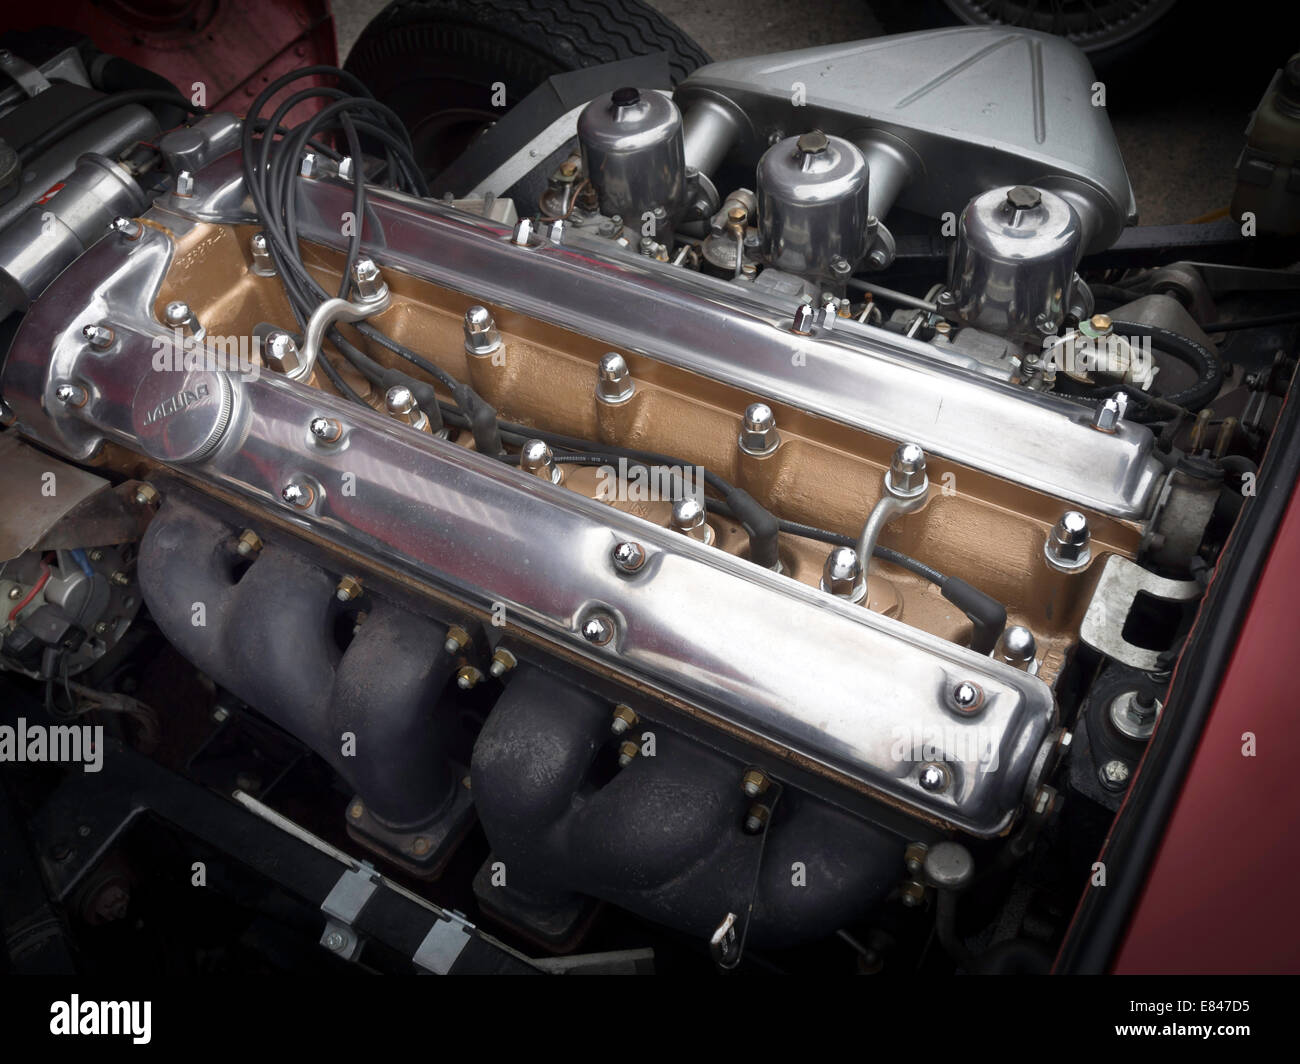 hight resolution of a 6 cylinder 3 litre jaguar e type classic sports car engine